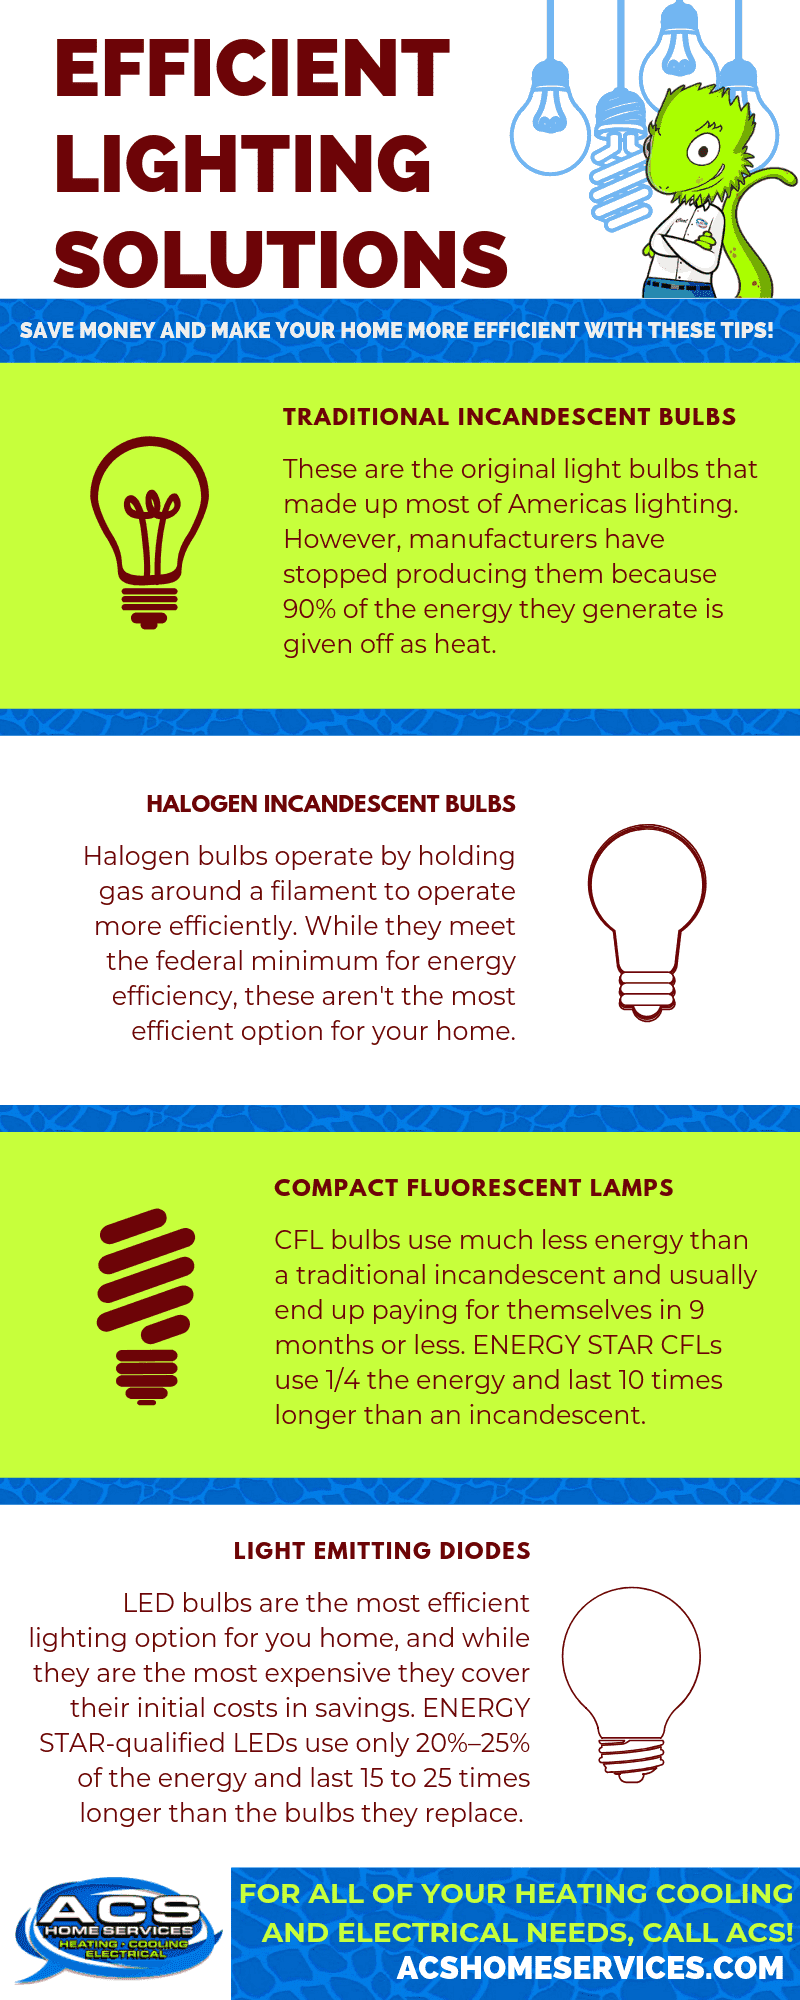 A list of efficient lighting options.